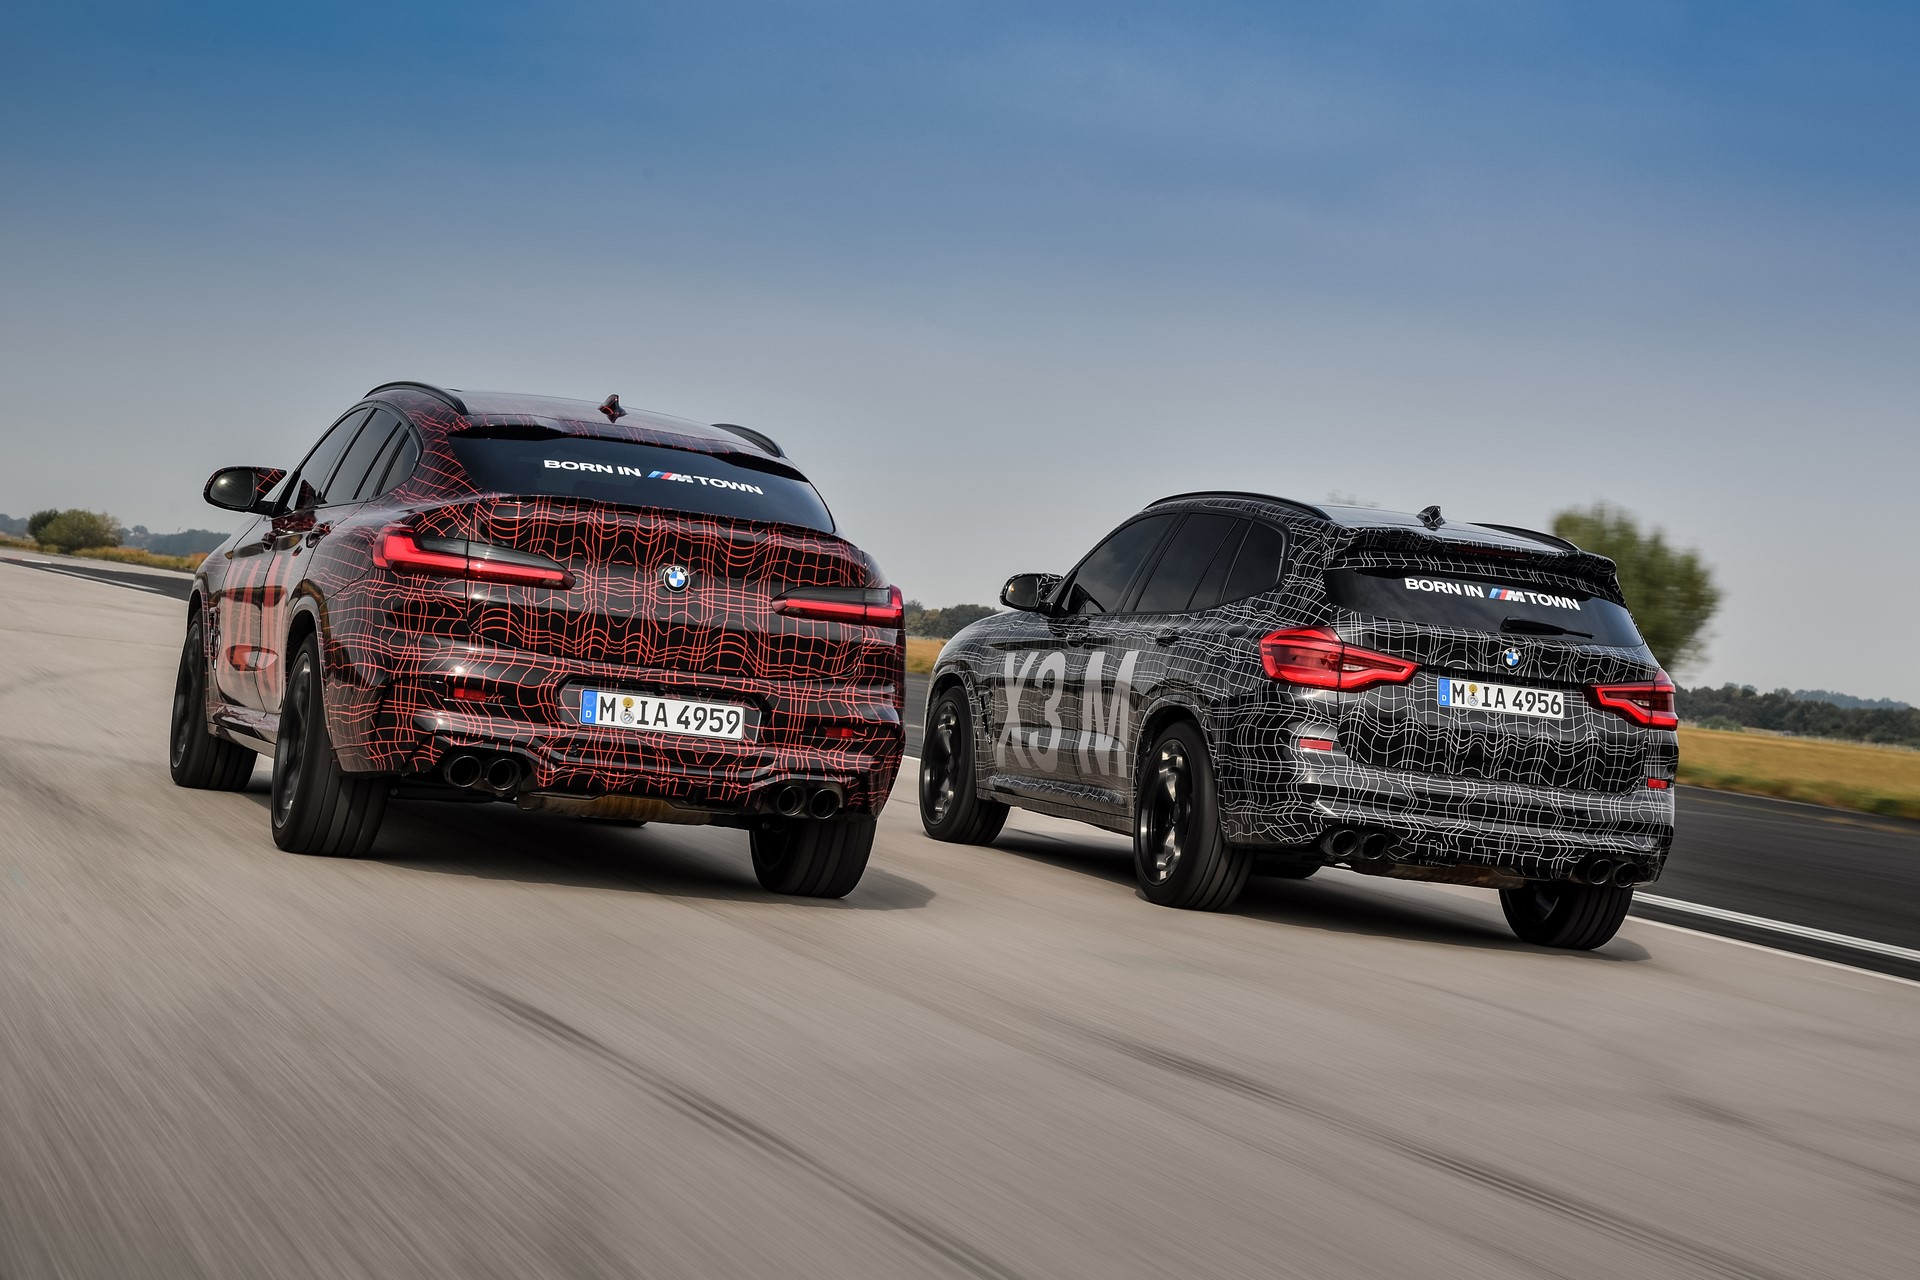 BMW X3 M and BMW X4 M at Nurburgring (4)